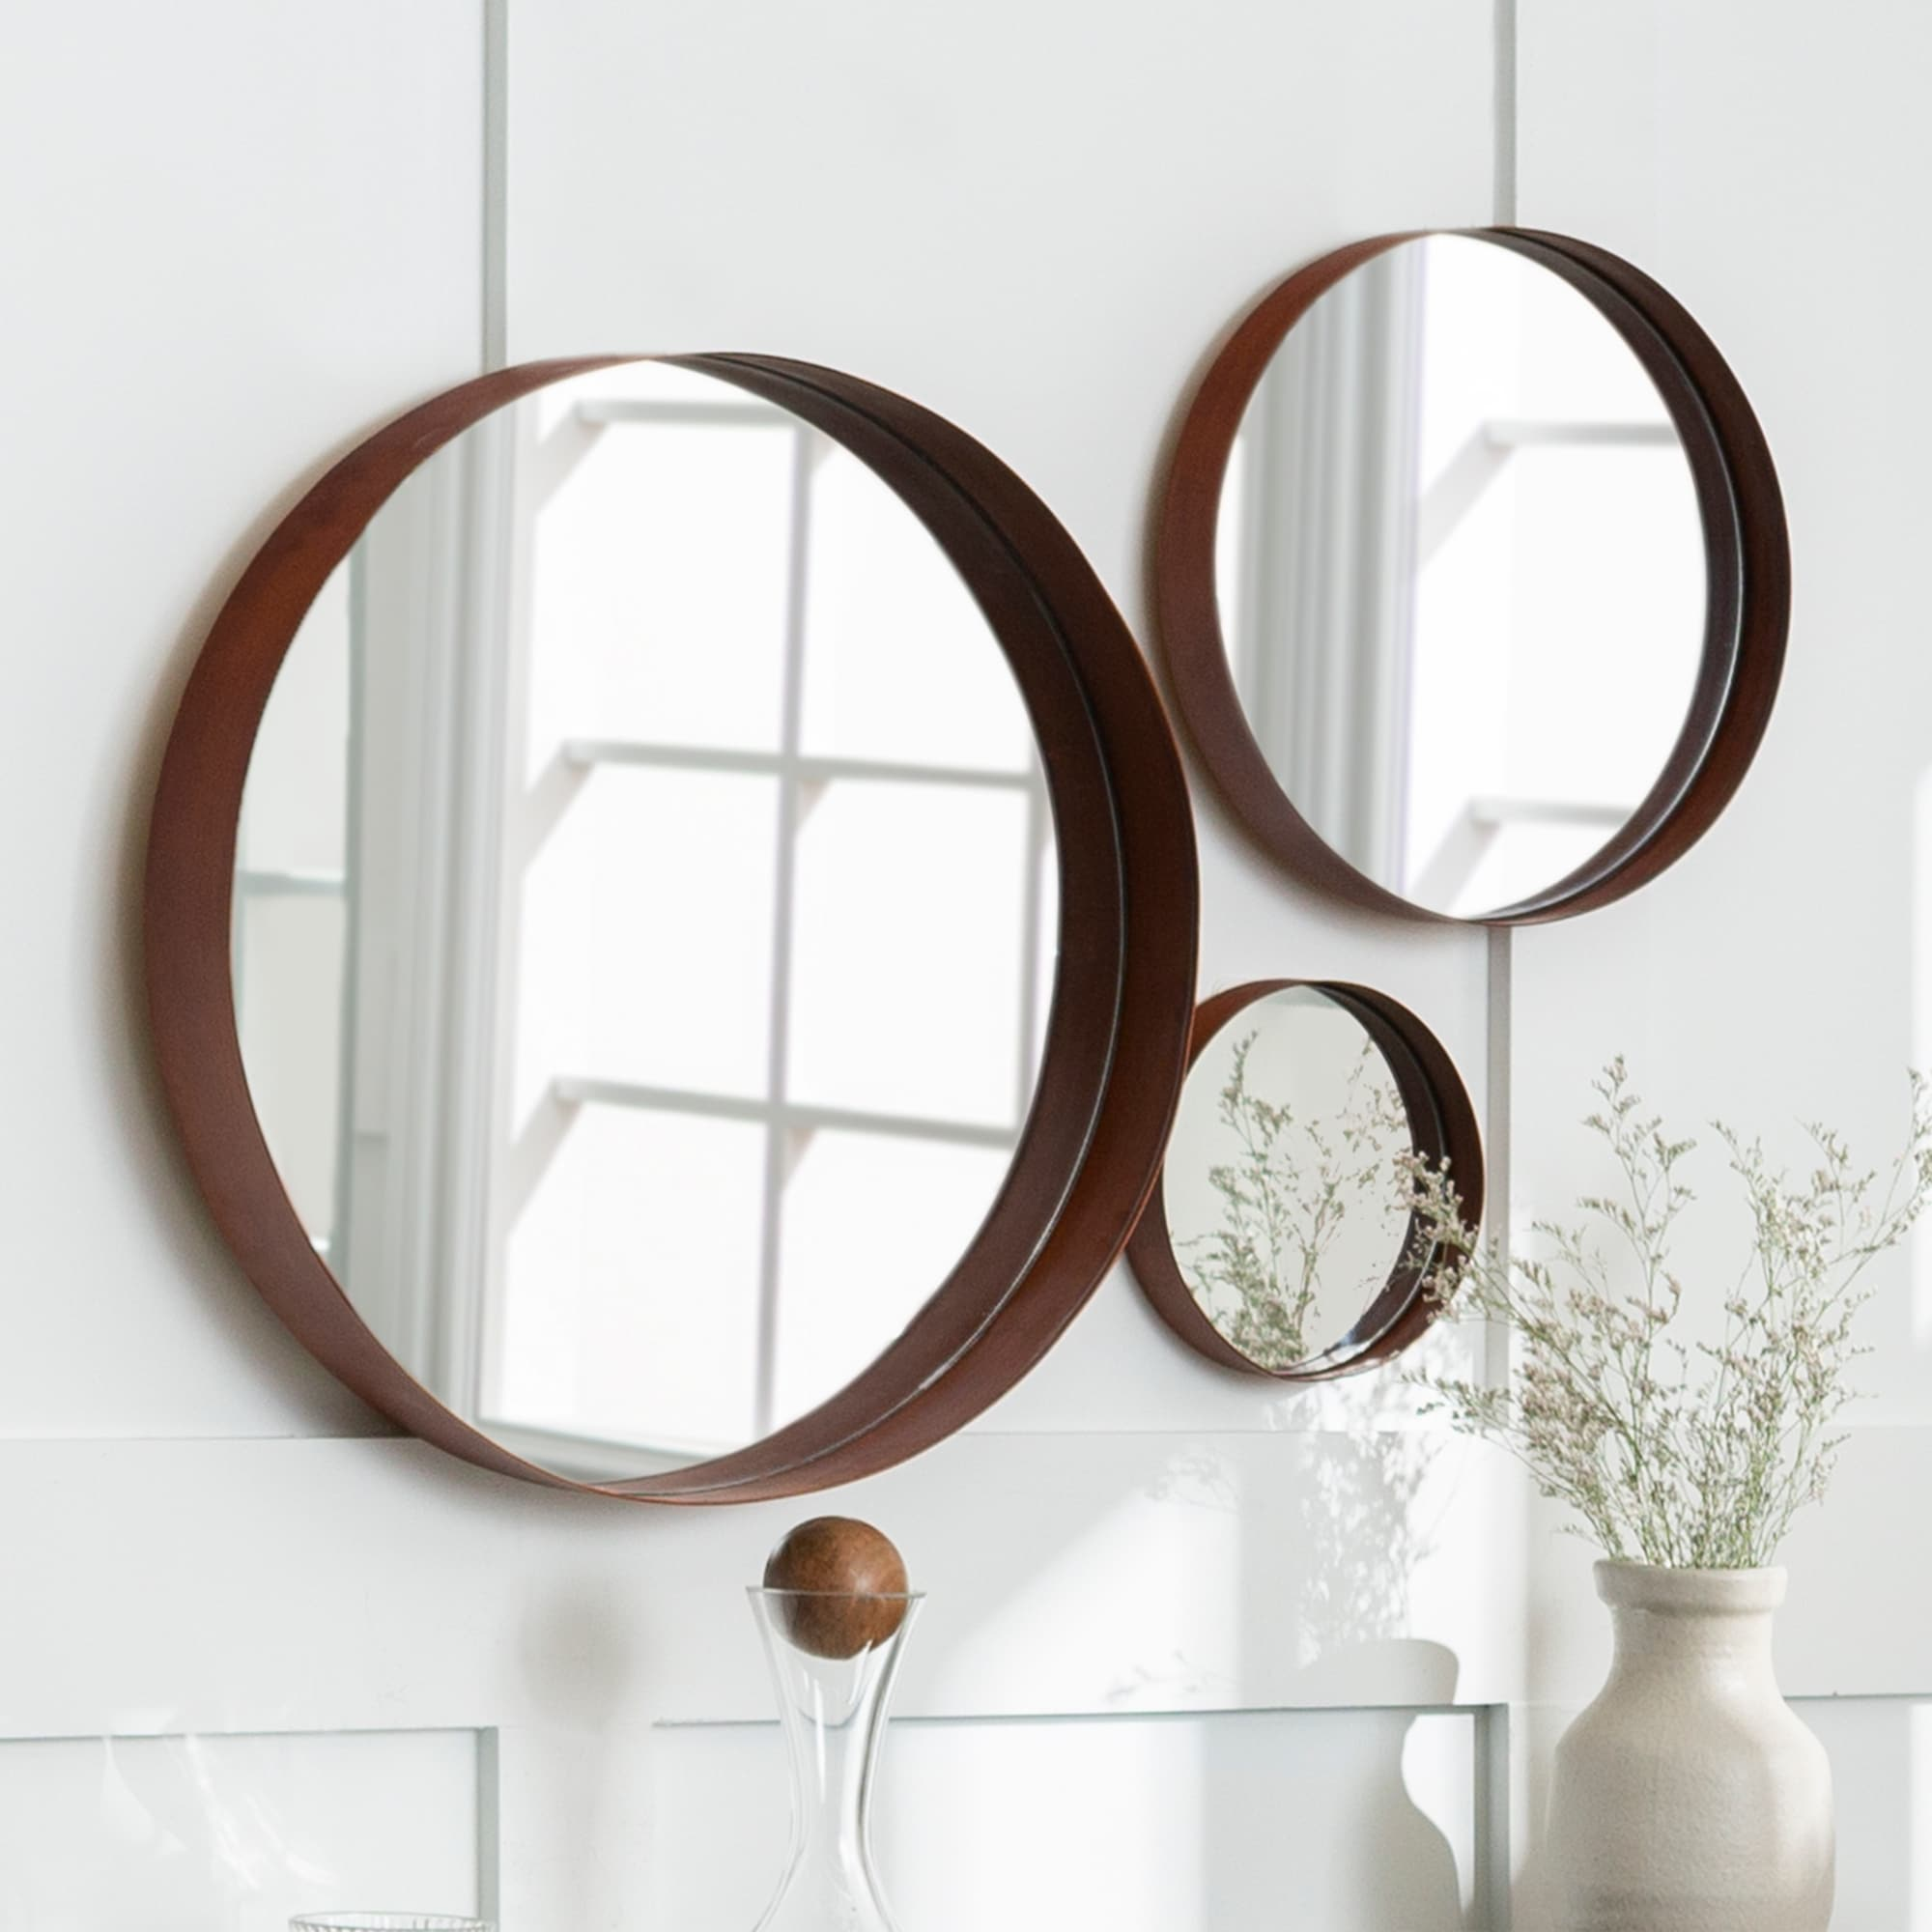 Shop Middlebrook Designs Round Copper Banded Wall Mirrors Set Of 3 Overstock 17433994